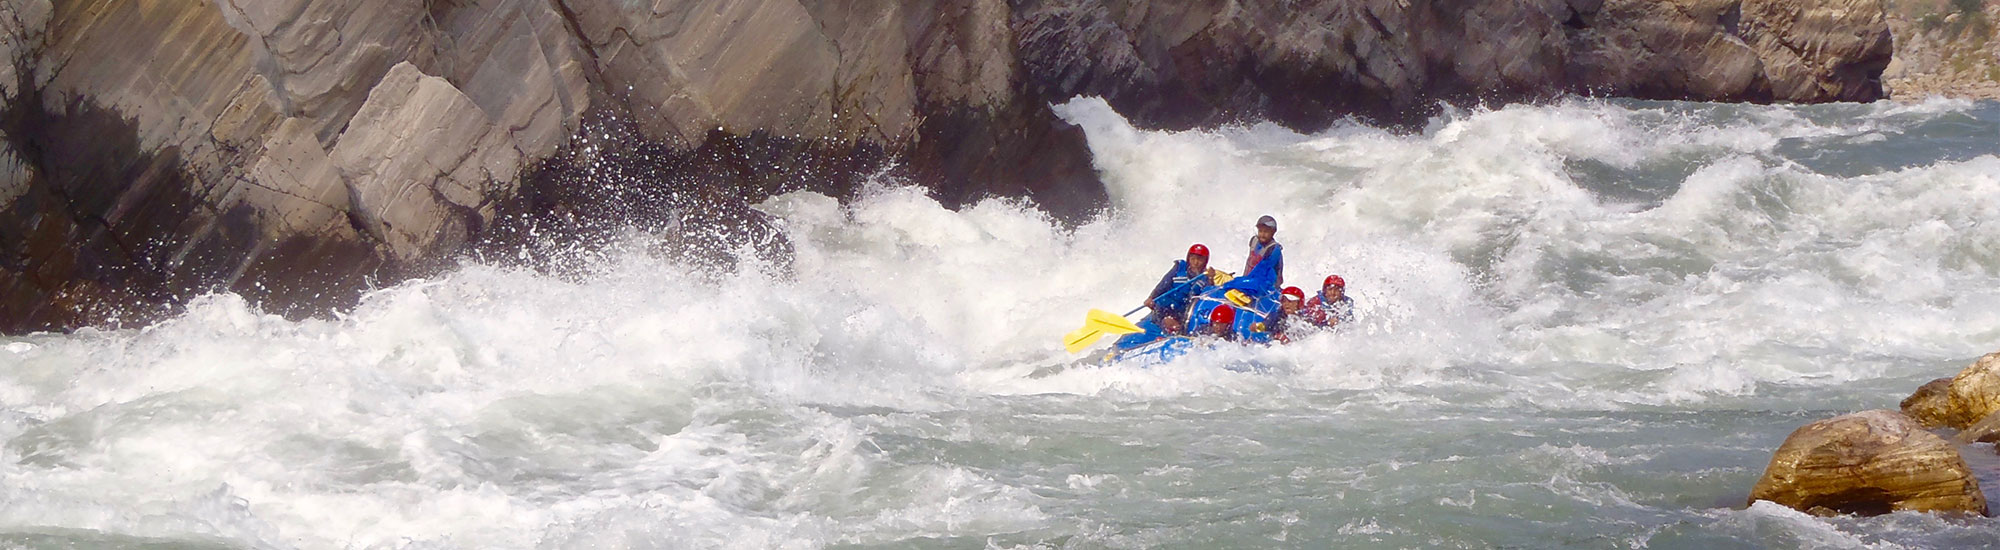 Riding the waves on Sun Koshi, come join in the adventure!